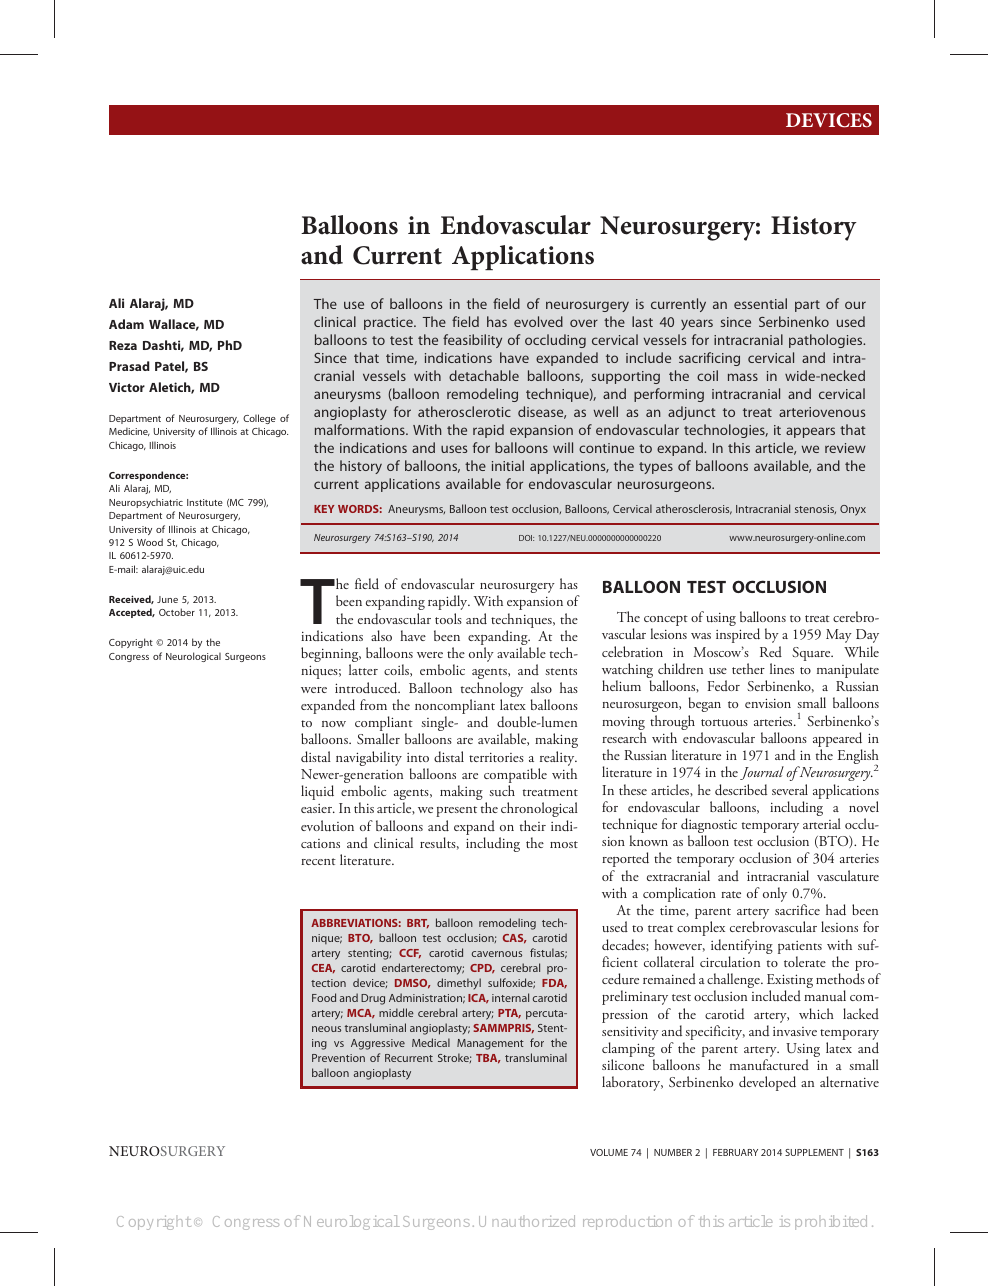 Balloons in Endovascular Neurosurgery – topic of research